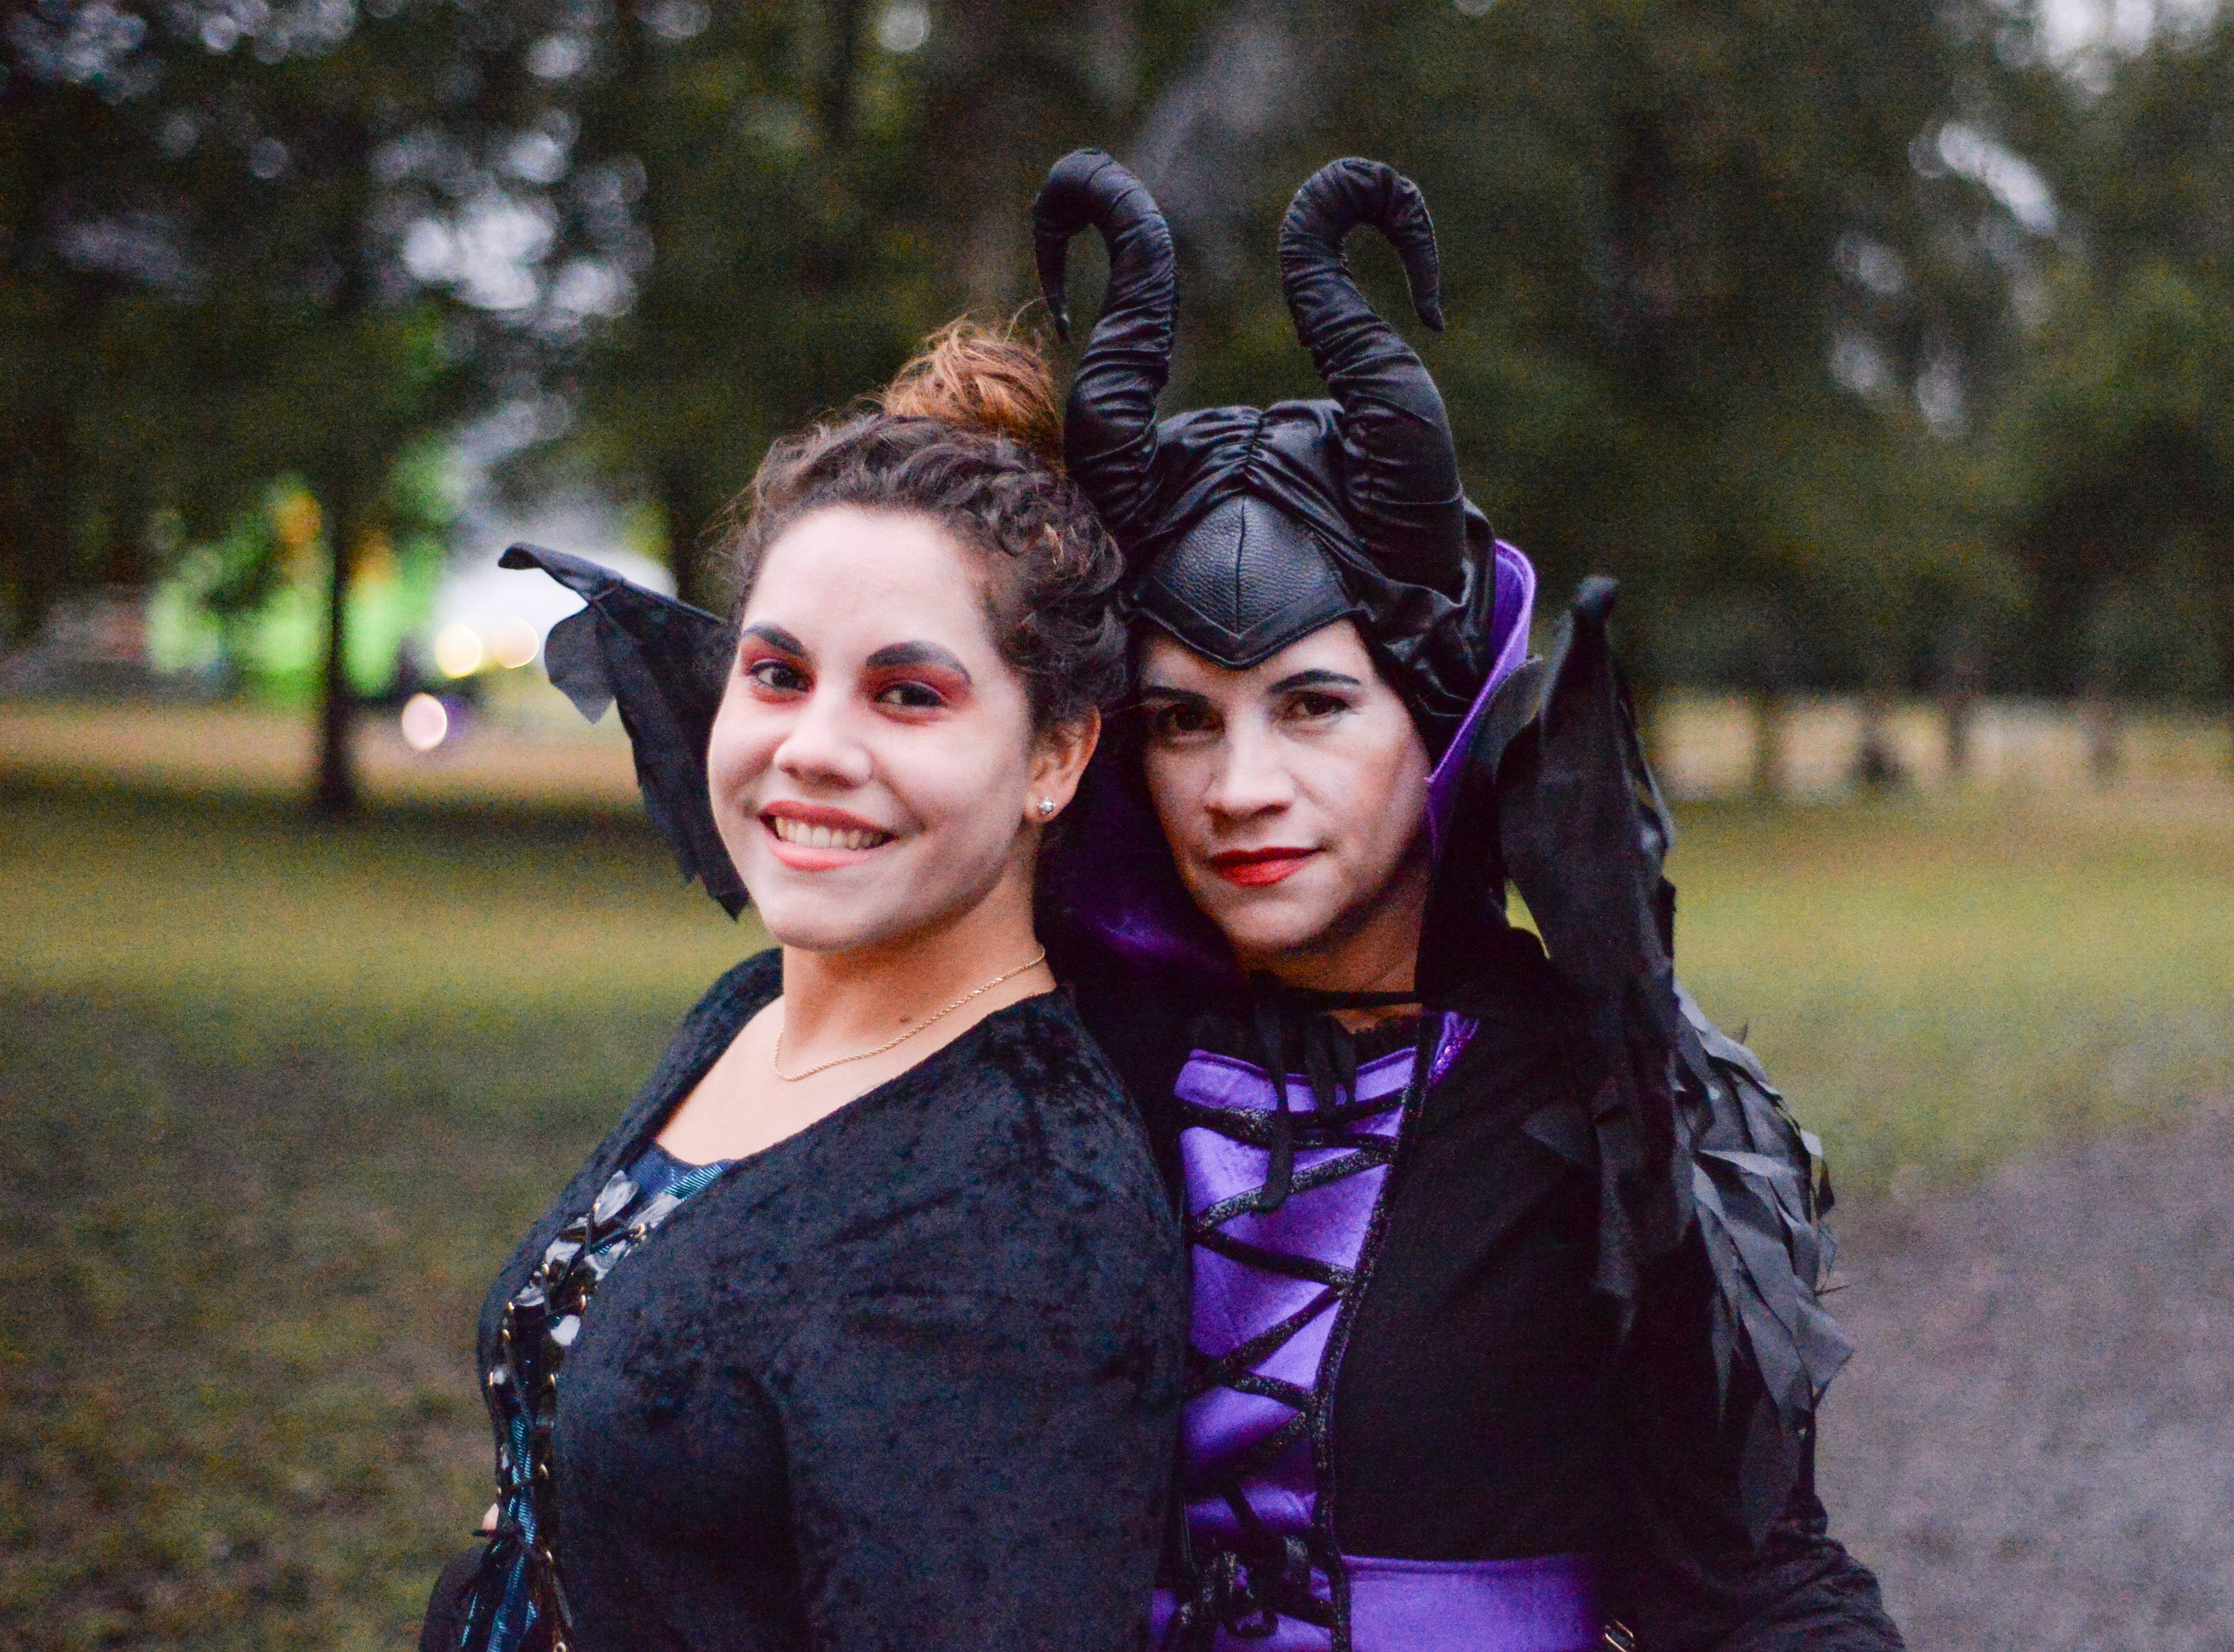 Christina Cintron and Judy Correa pause for a photograph during the Castle of Villains trick or treating event at Historic Rock Castle in Hendersonville on Friday, Oct. 26.